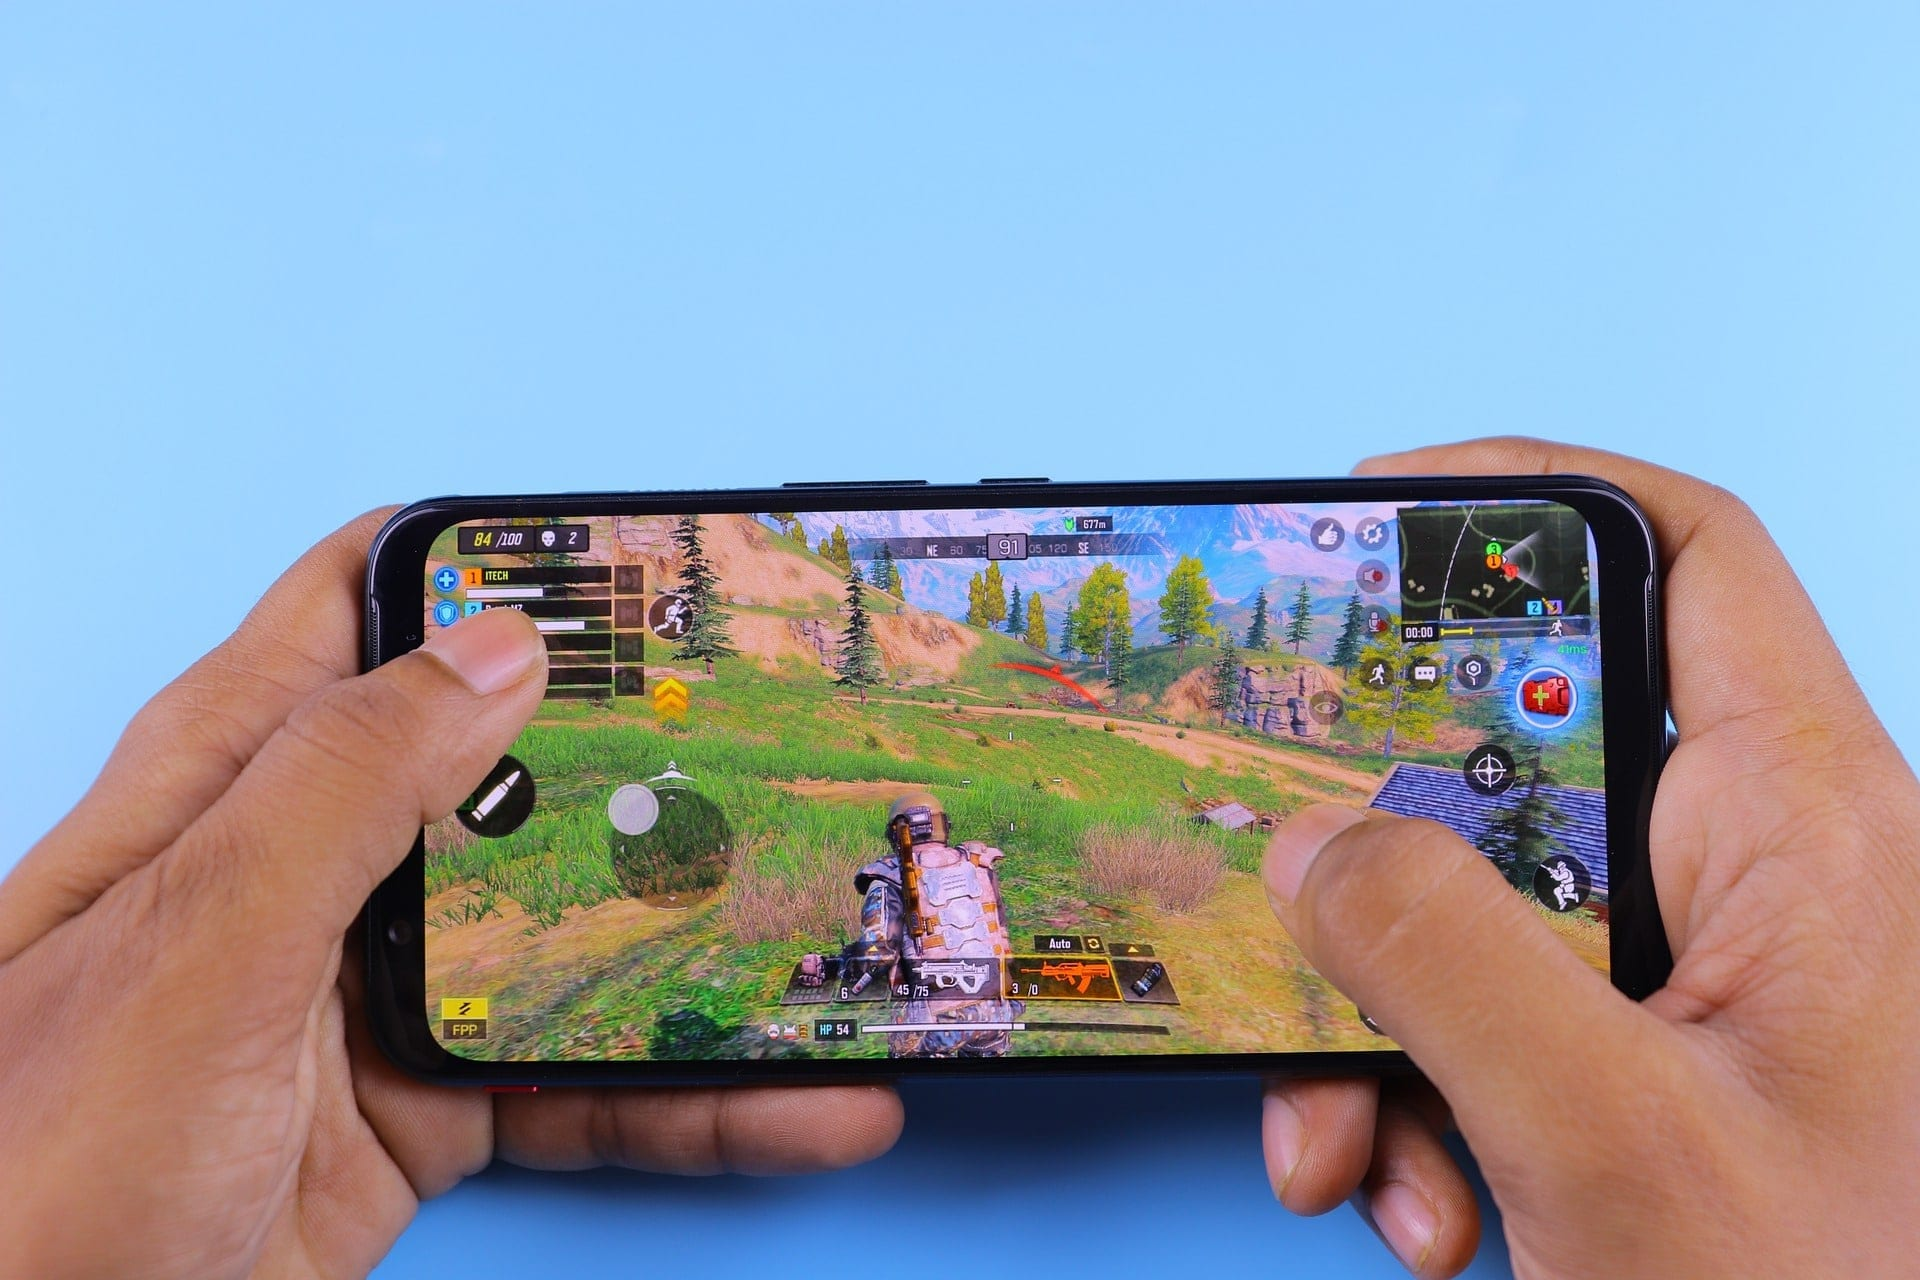 Seven Things to Look for in an Android Gaming Device